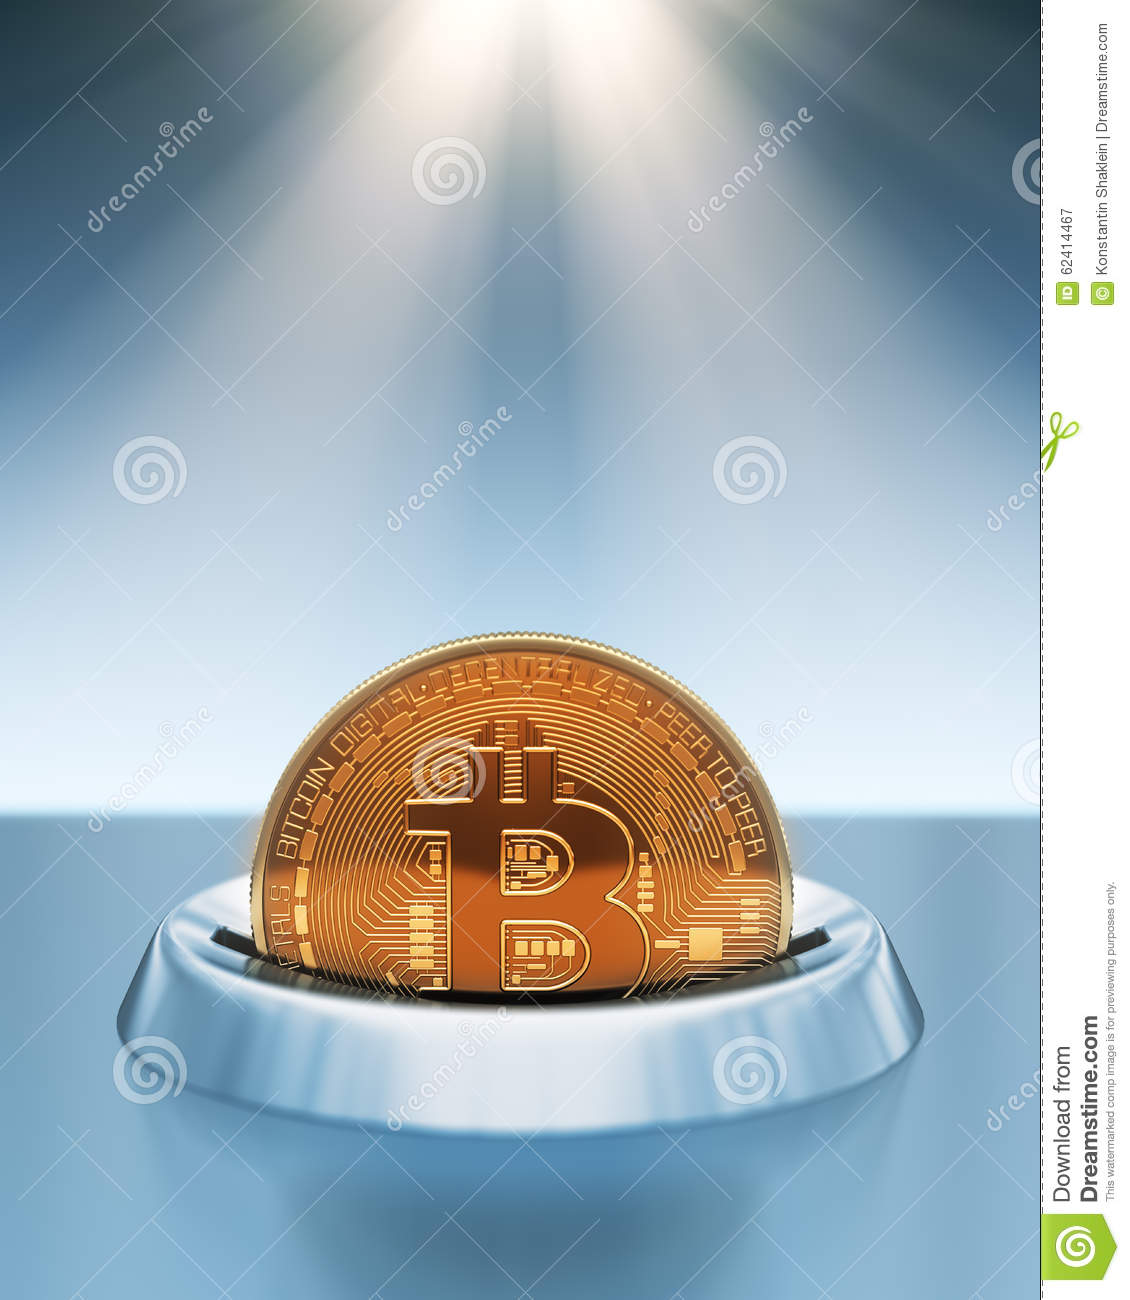 putting bitcoin into coin slot in the rays of light stock. Black Bedroom Furniture Sets. Home Design Ideas